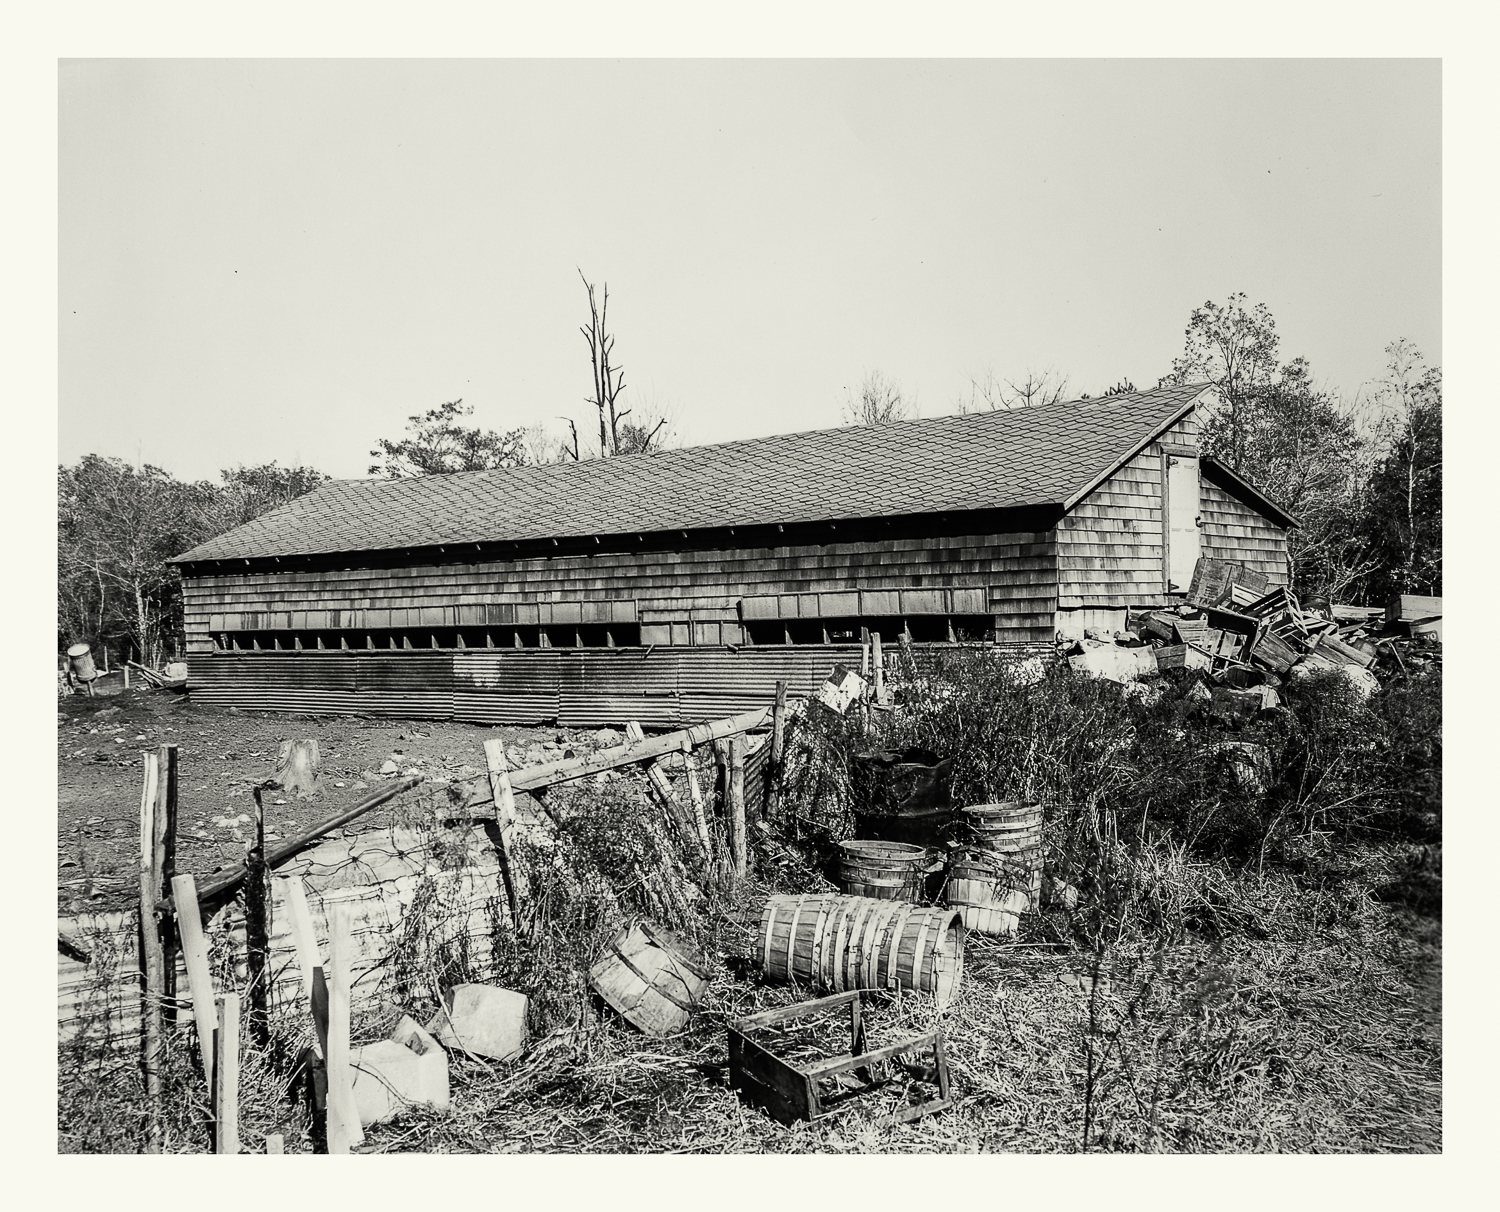 """Photograph No. PC 416. """"Photograph surveying barns and agricultural devices to be removed prior to construction of the Cohasset Naval Ammunition Depot Annex. (Note that barn has been cut in half as crews prepare for it's final removal.)"""" c. 1930; Records of Naval Districts and Shore Establishments, RG 181, NARA Boston."""